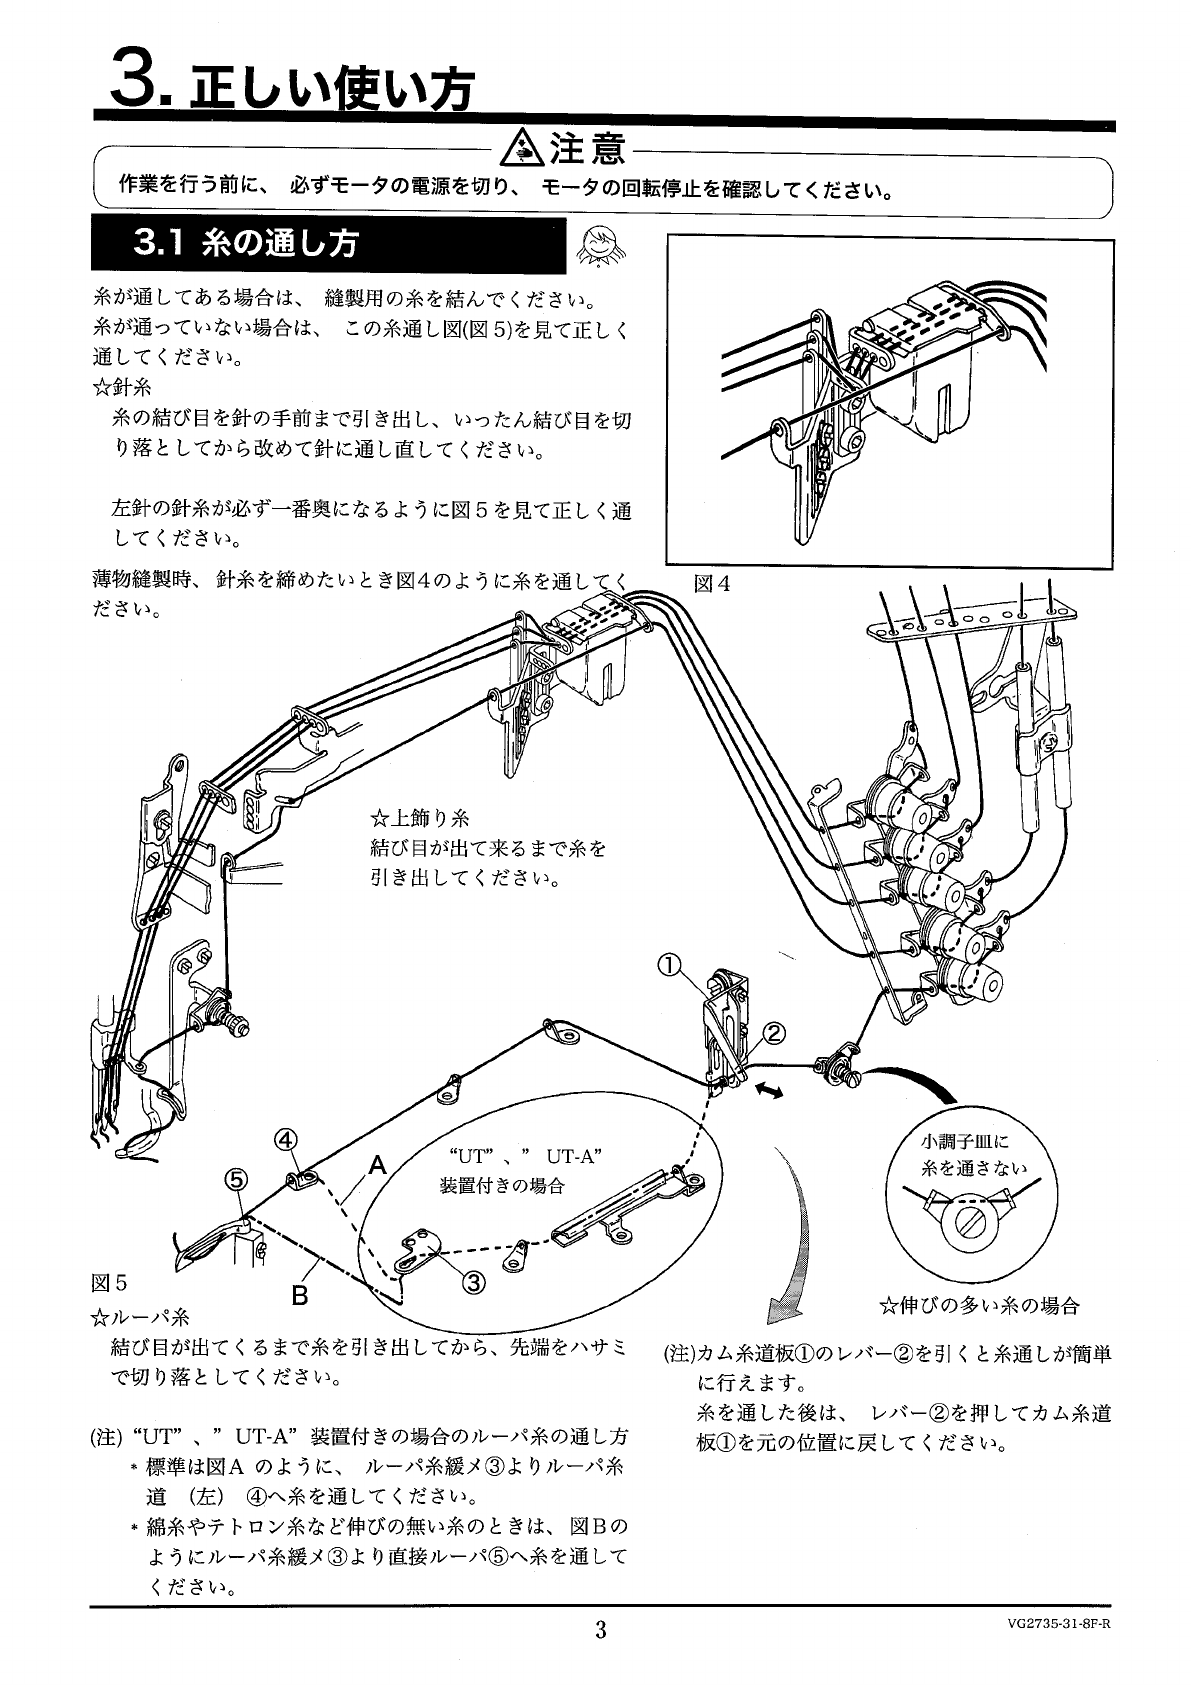 Yamato Vg Instructions And Parts Book